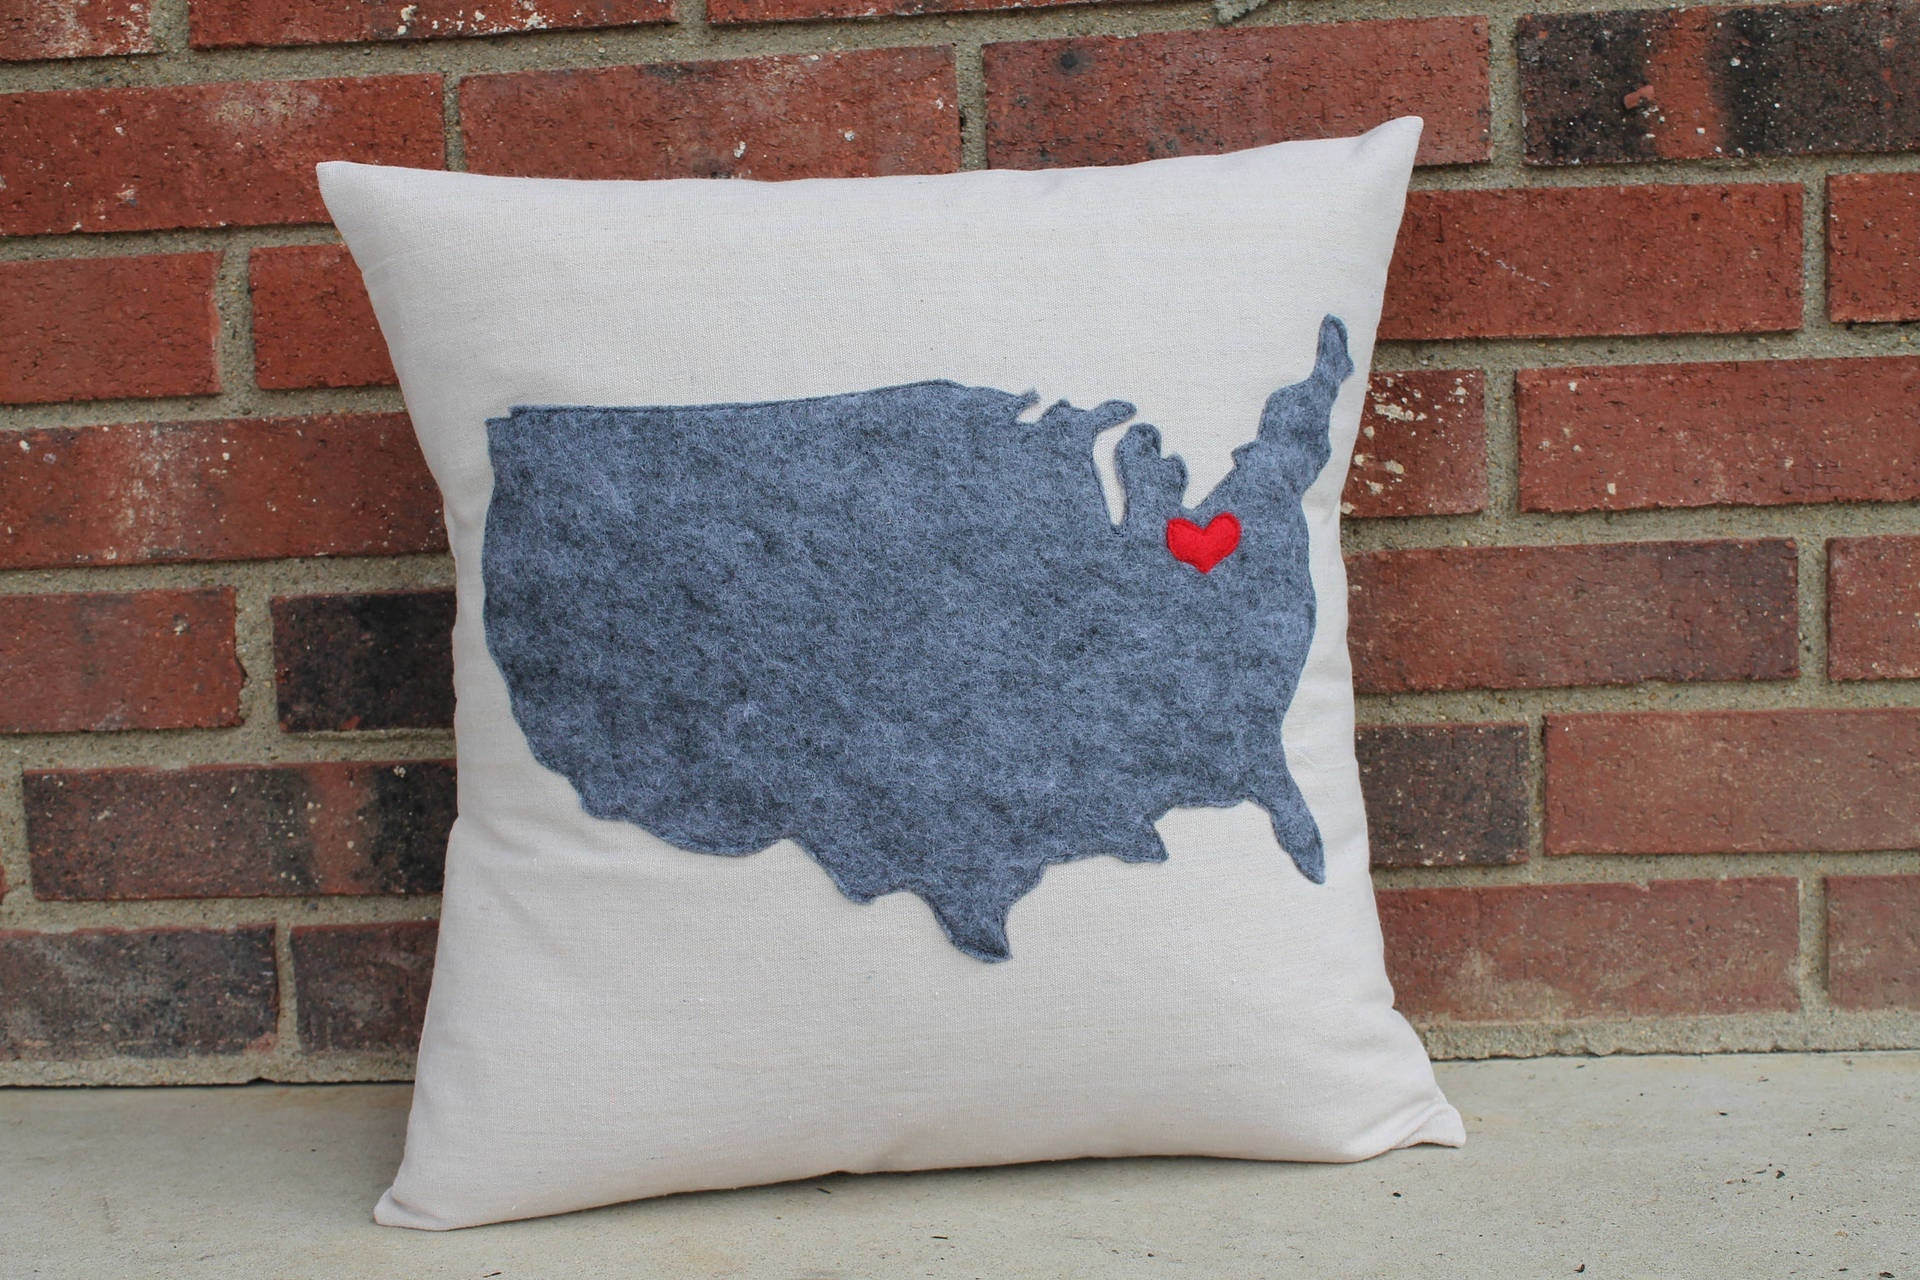 USA Ohio Love Handmade Pillow 16 Inch - Celebrate Local, Shop The Best of Ohio